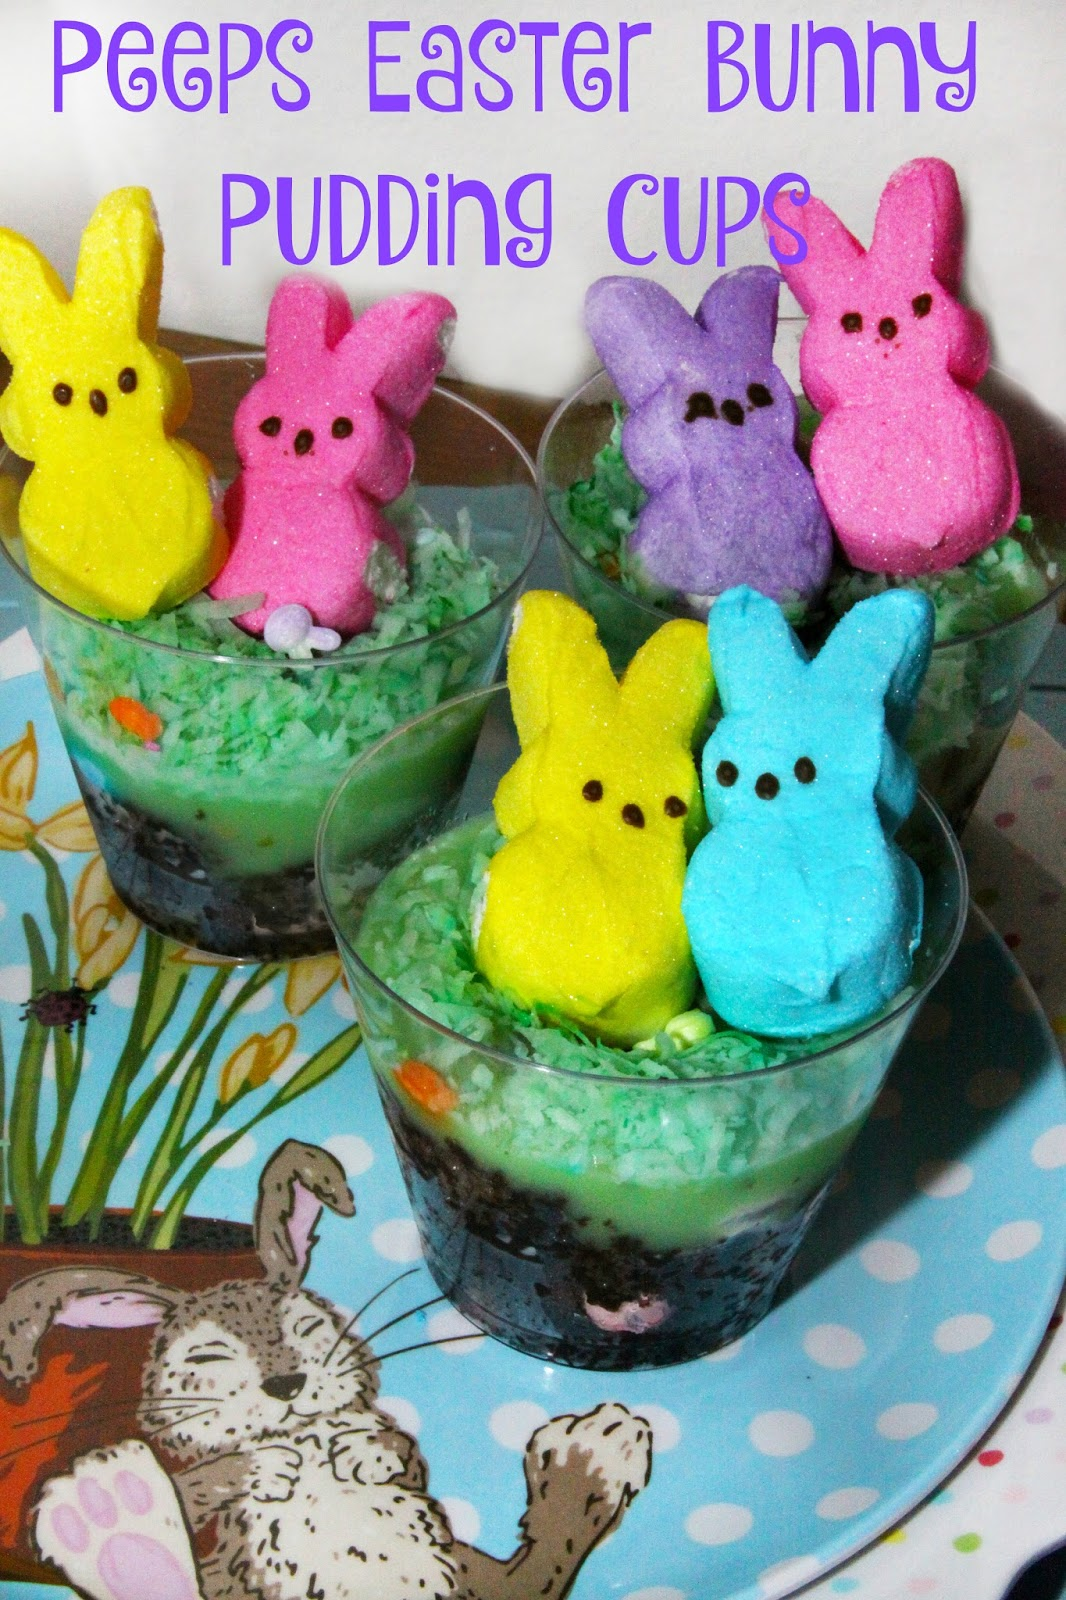 For the Love of Food: Peeps Easter Bunny Pudding Cups